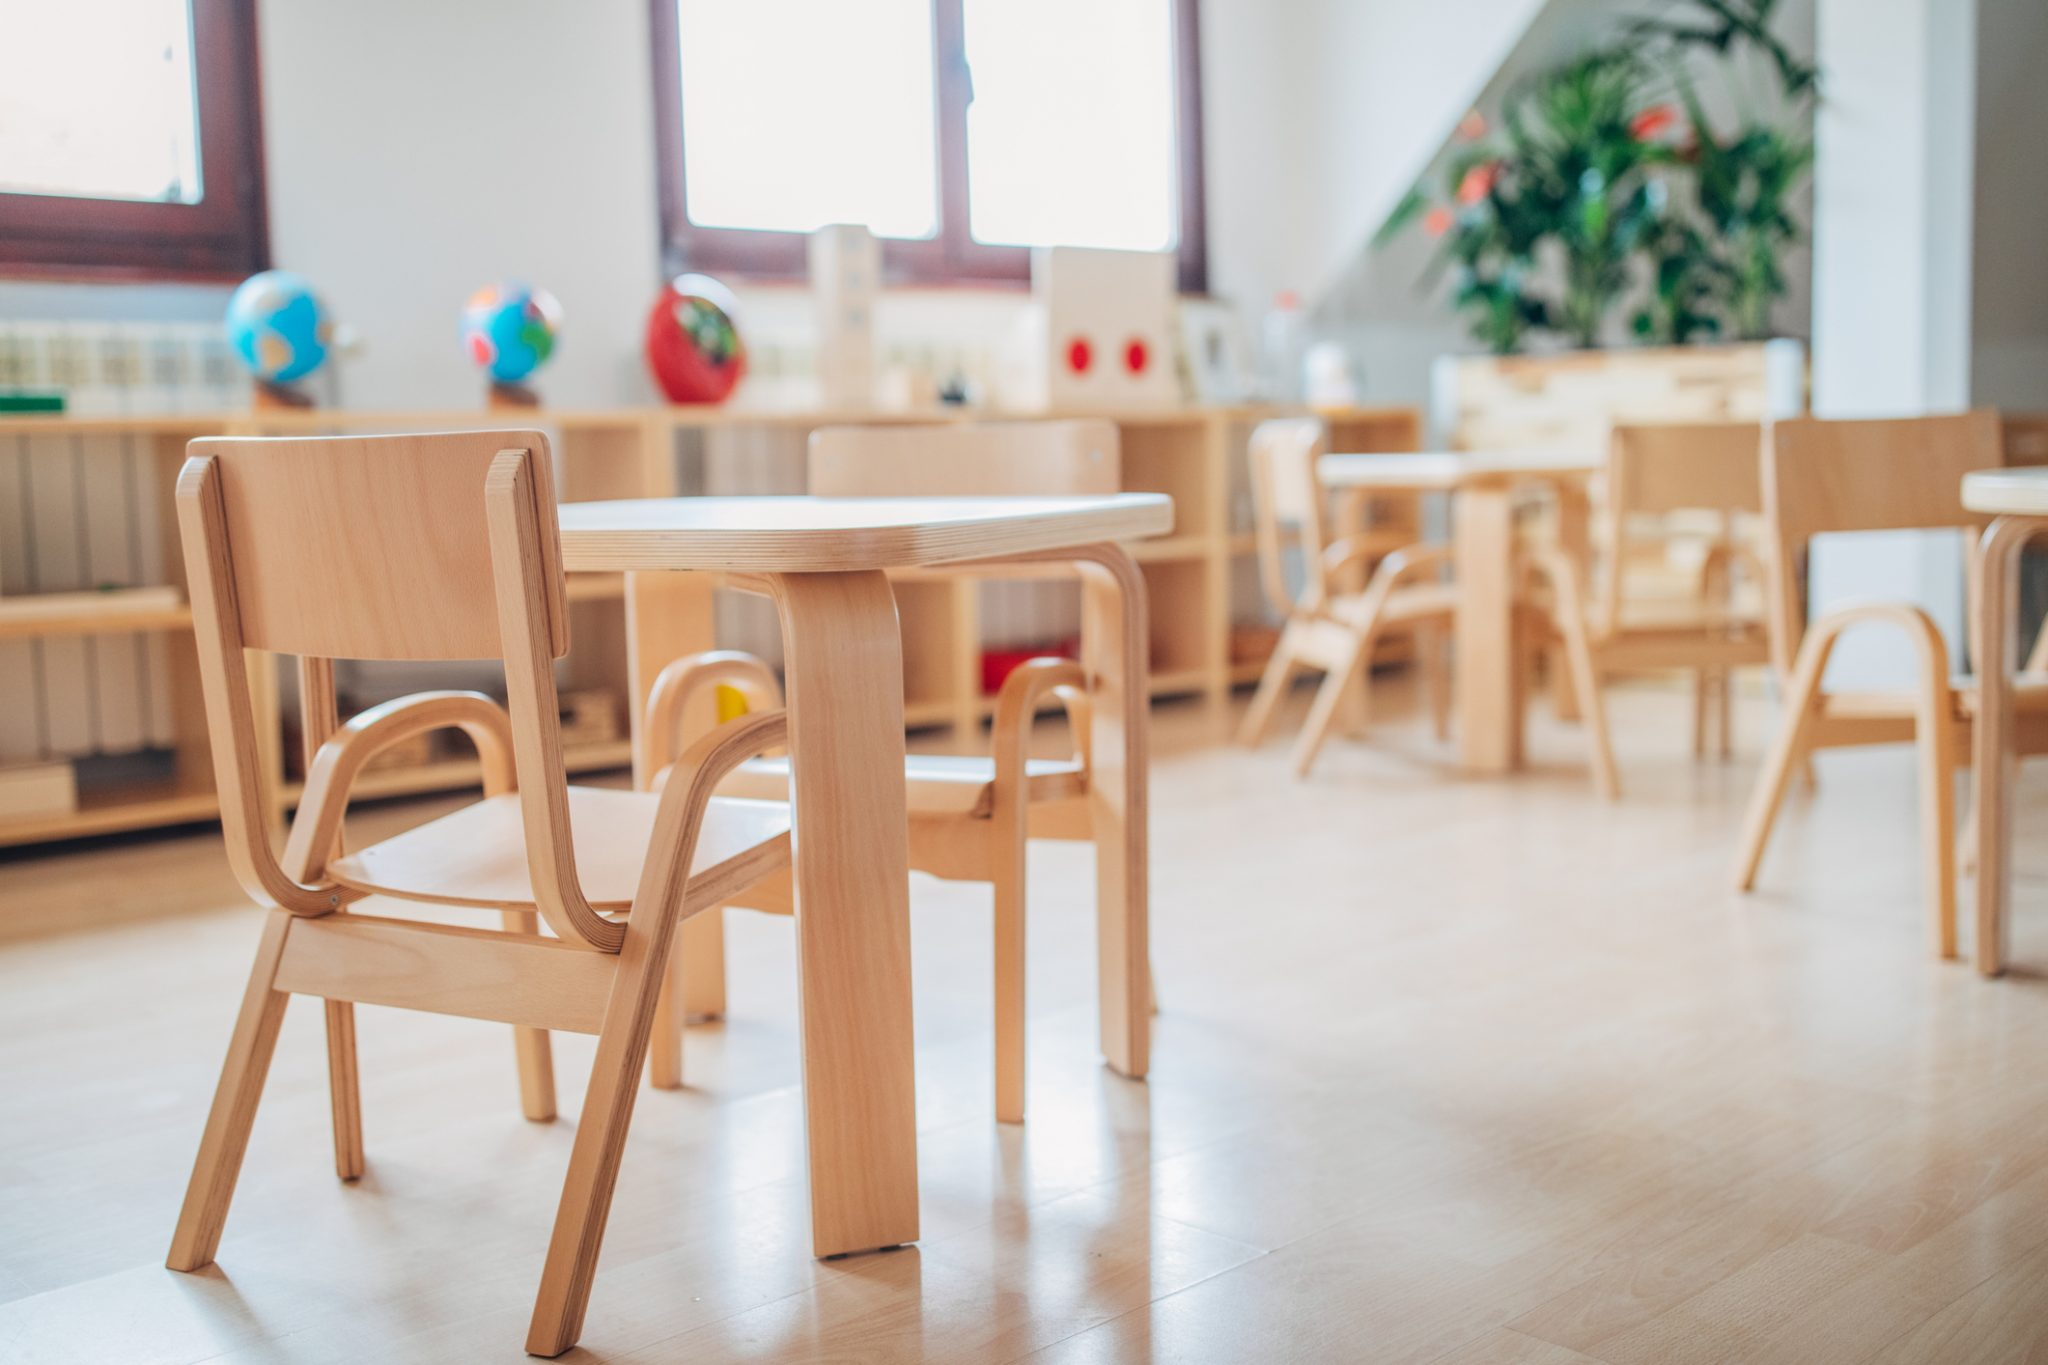 U.S. House passes package to rescue child care industry